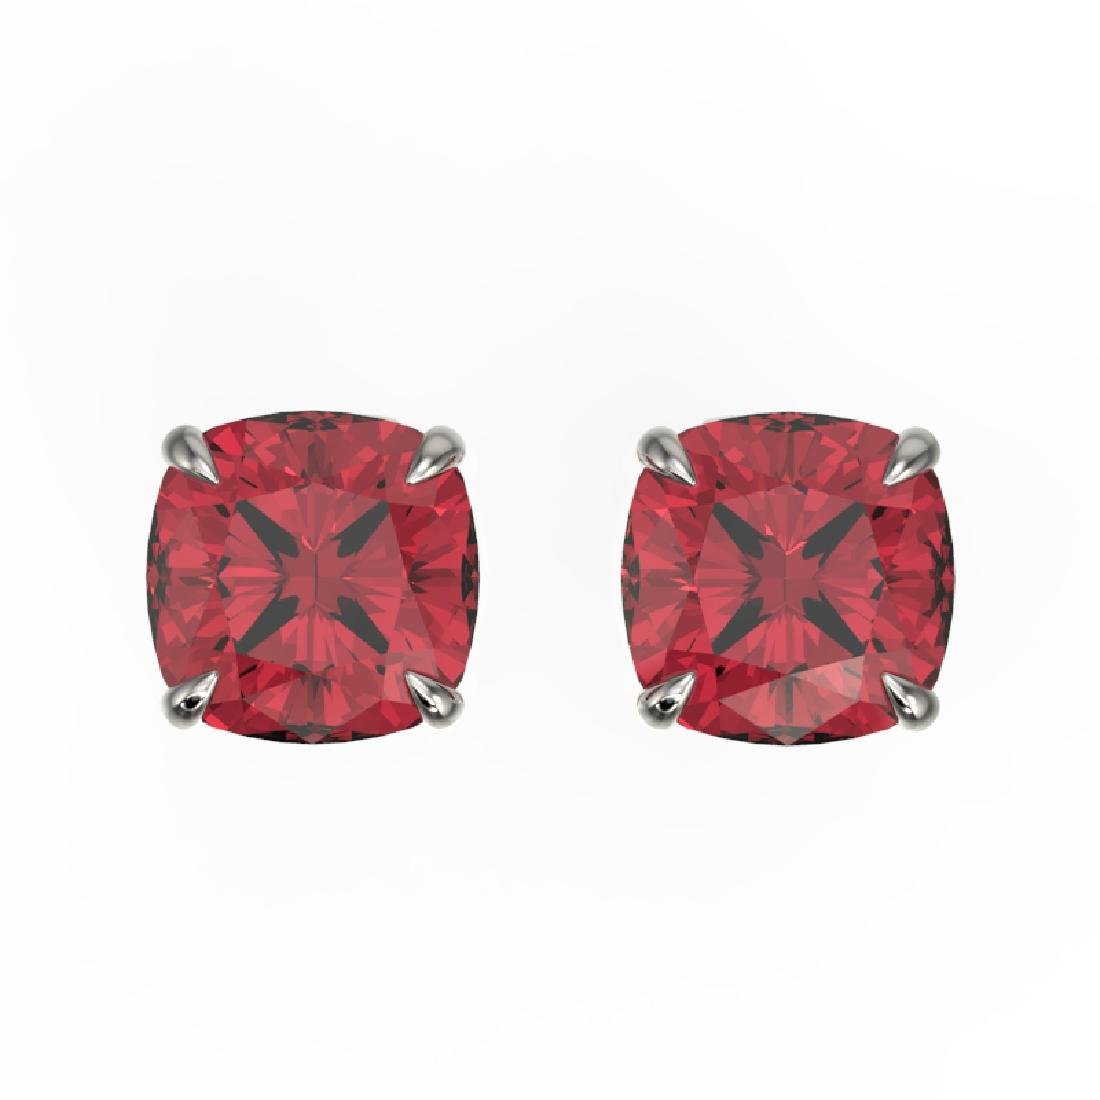 4 CTW Cushion Cut Pink Tourmaline Solitaire Stud